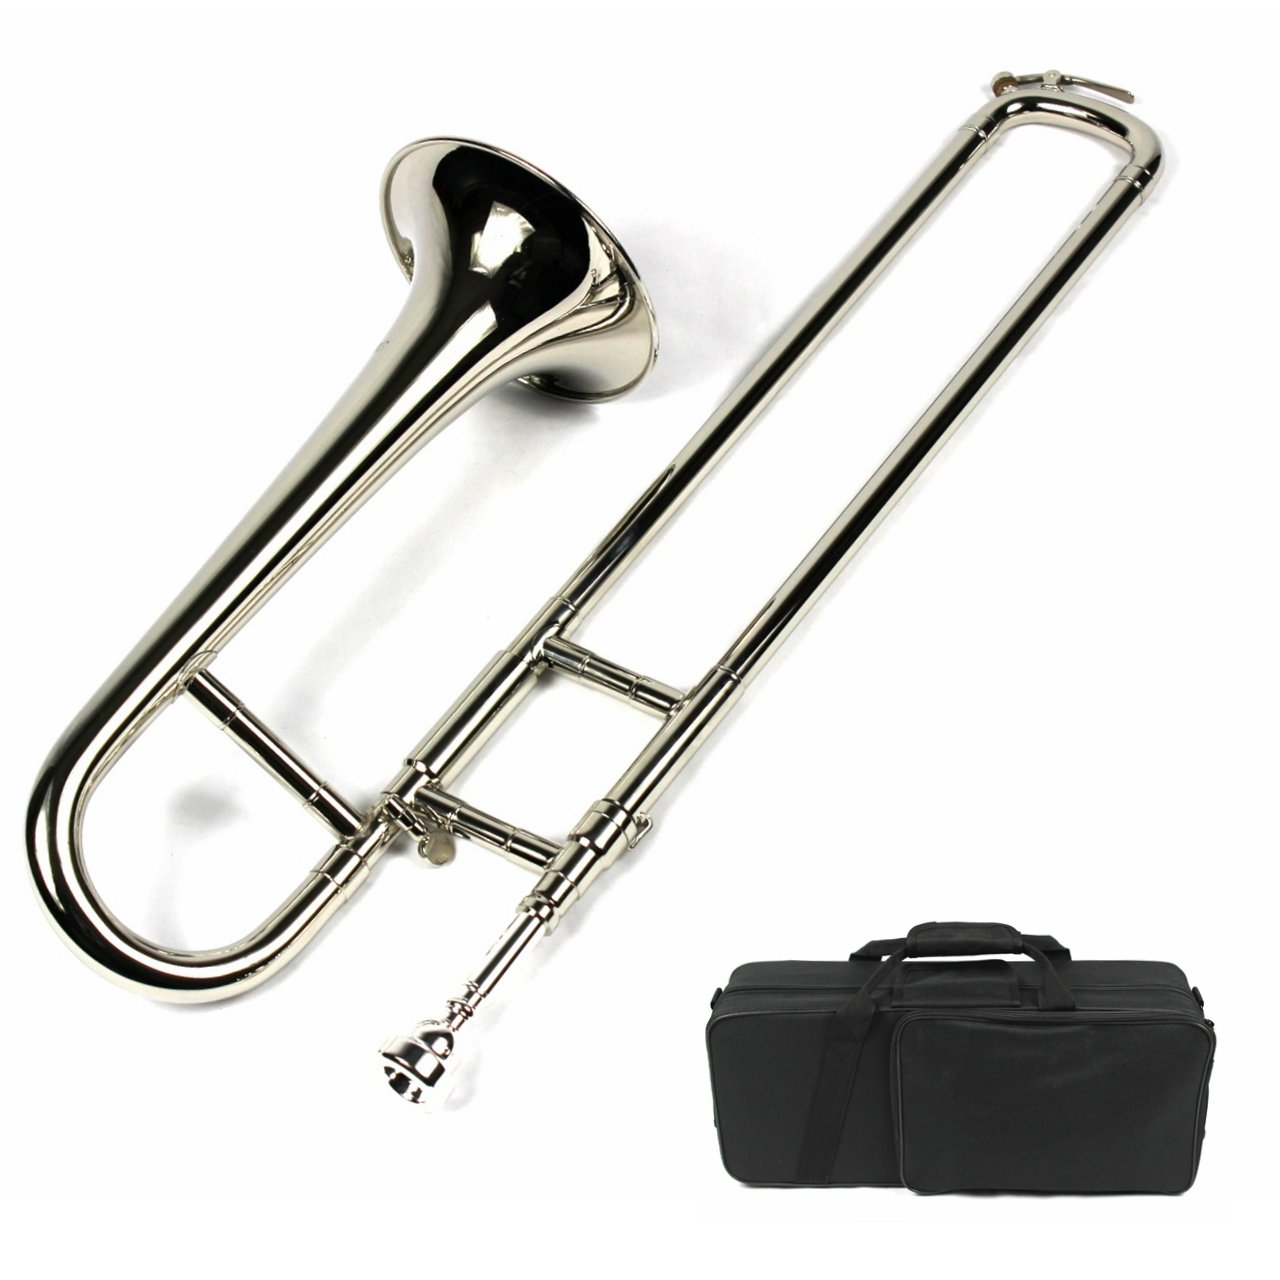 Brand New Bb Mini Trombone w/ Case and Mouthpiece- Nickel Plated Finish